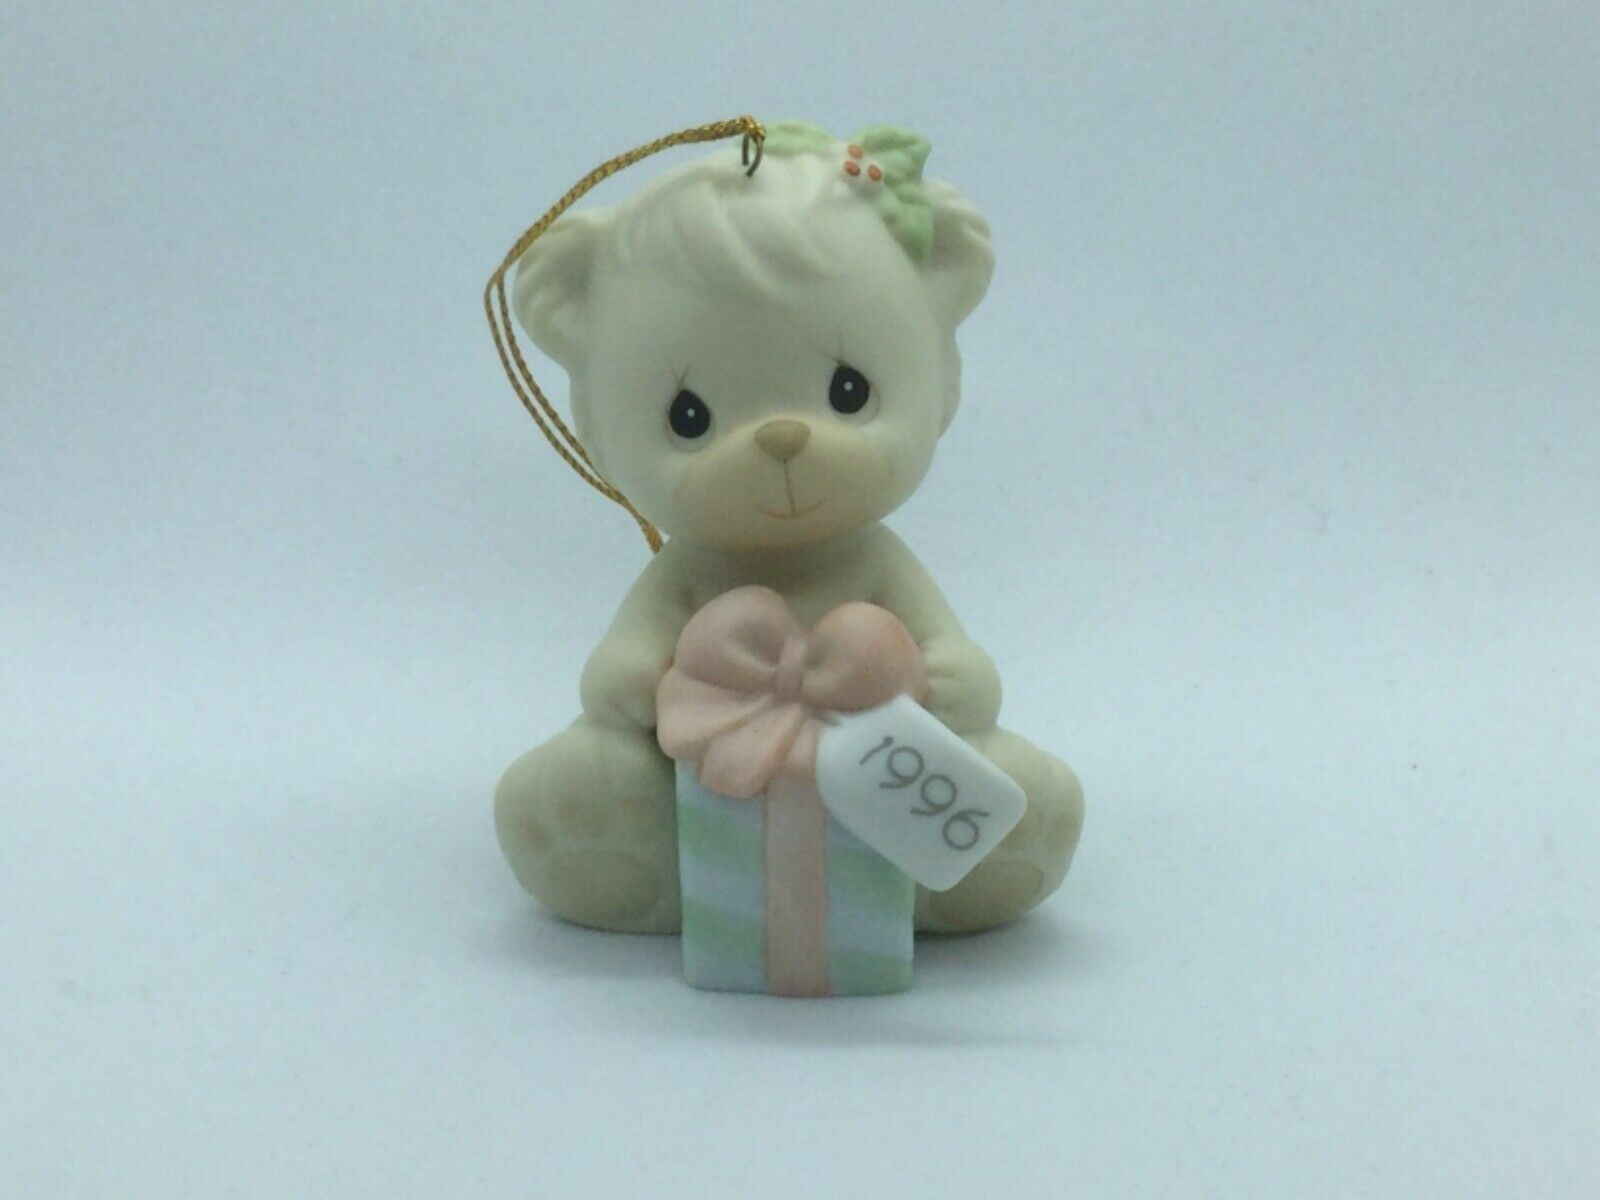 Primary image for #531200 PRECIOUS MOMENTS 1996 CHRISTMAS ORNAMENT, 1ST YEAR ISSUE, BEAR W/GIFT